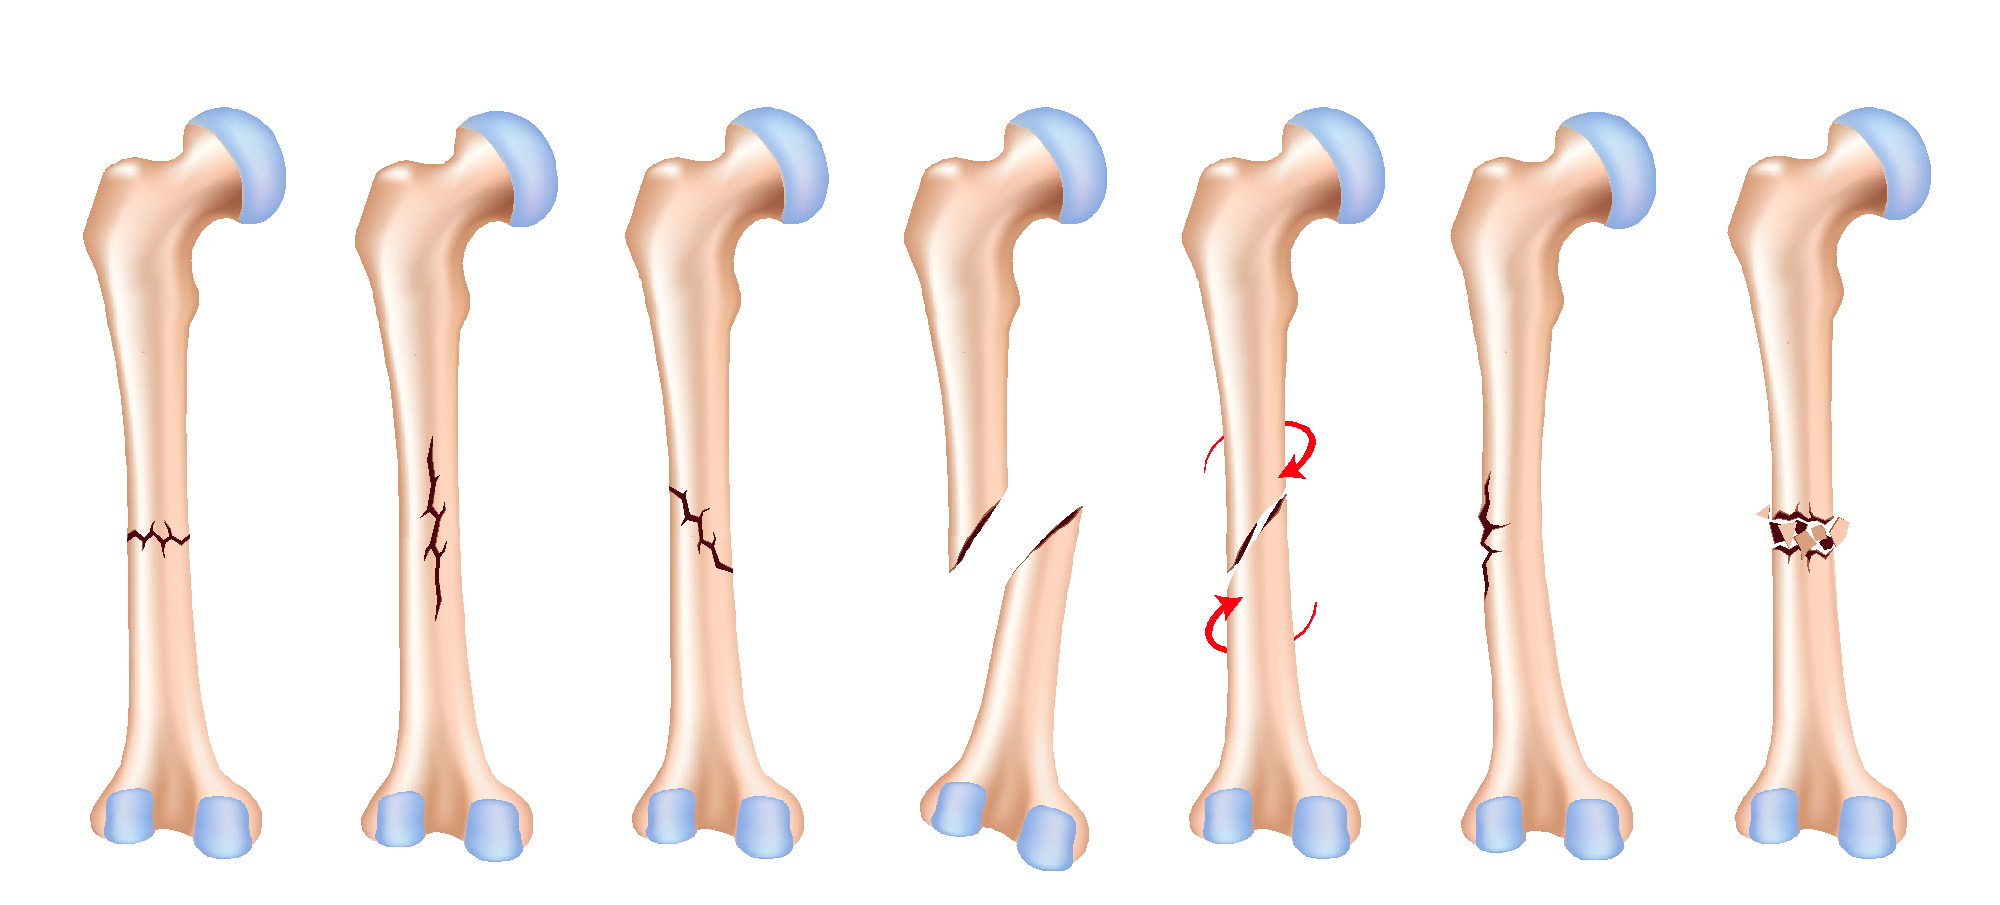 Bone Fractures Convergent Movement And Performance Llc